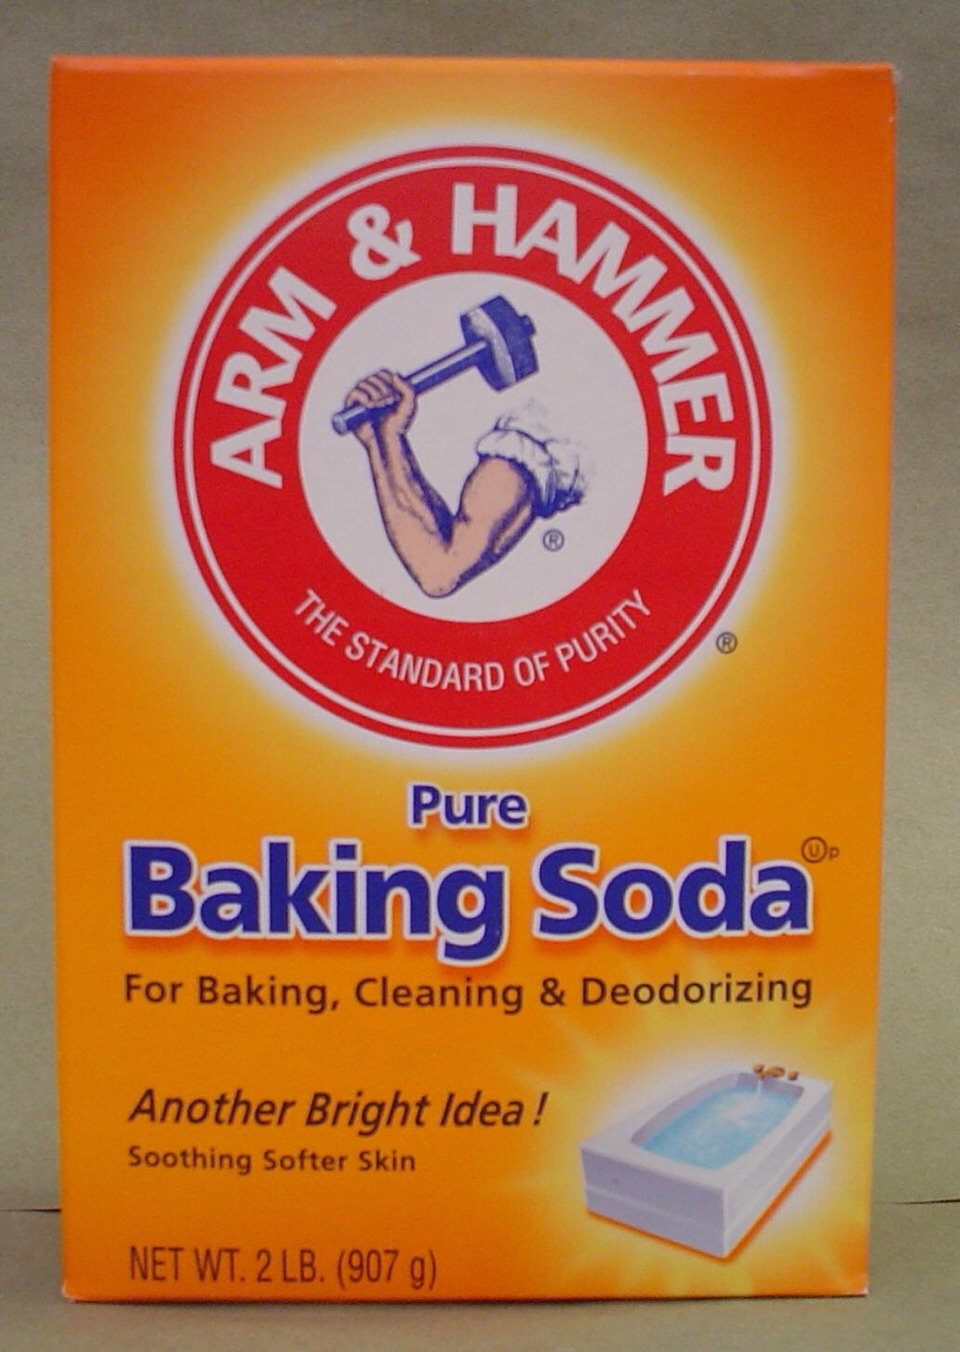 You can also use baking soda!!! Put a little bit into a cup and mix it with water until it becomes pasty. Then apply it onto your toothbrush and brush away!!!